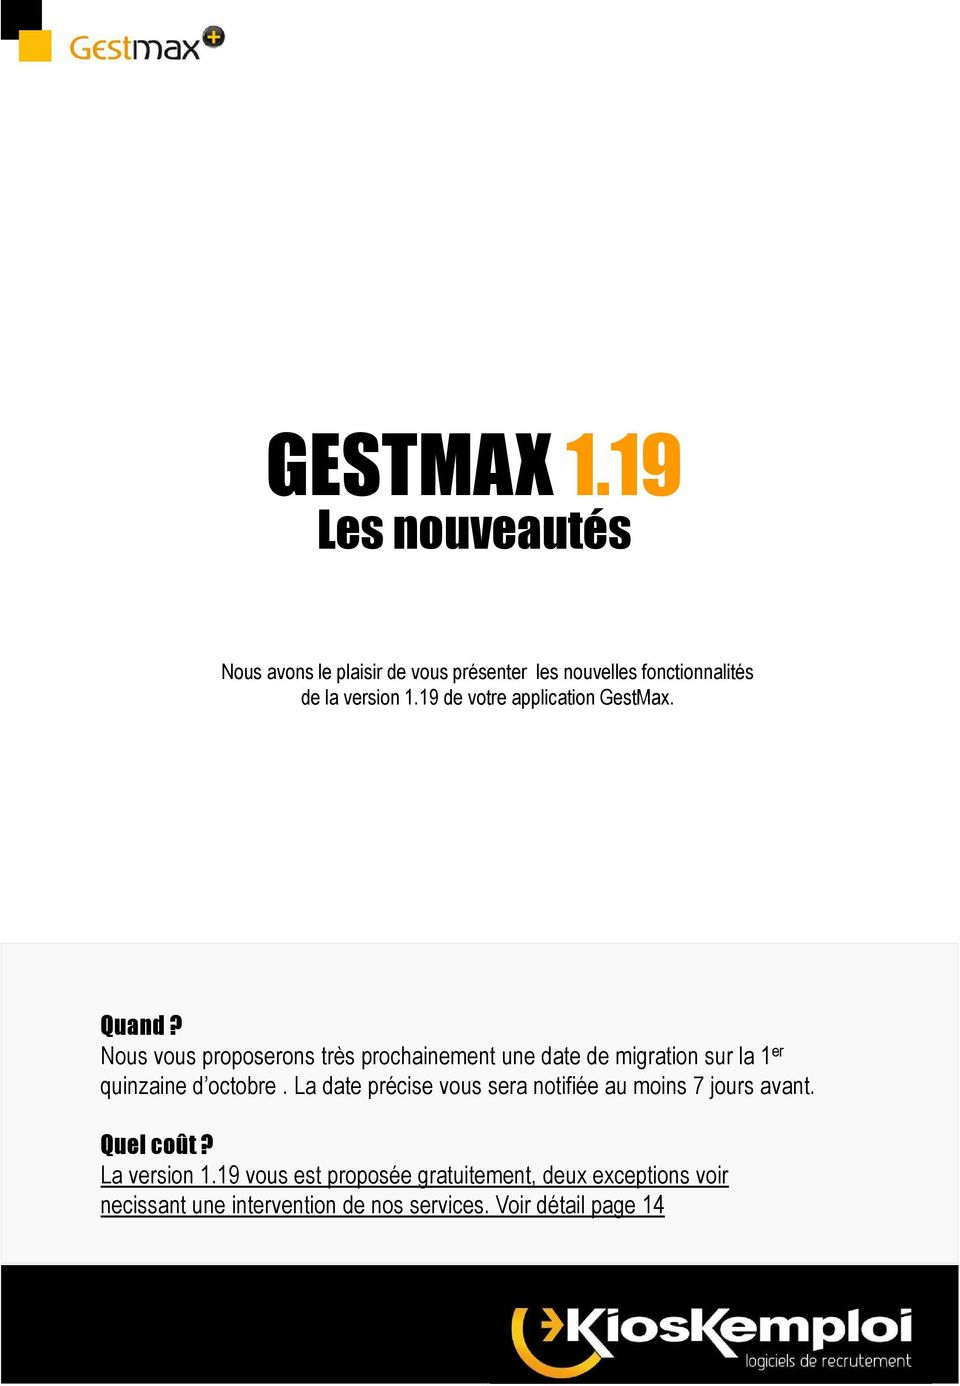 19 de votre application GestMax. Quand?